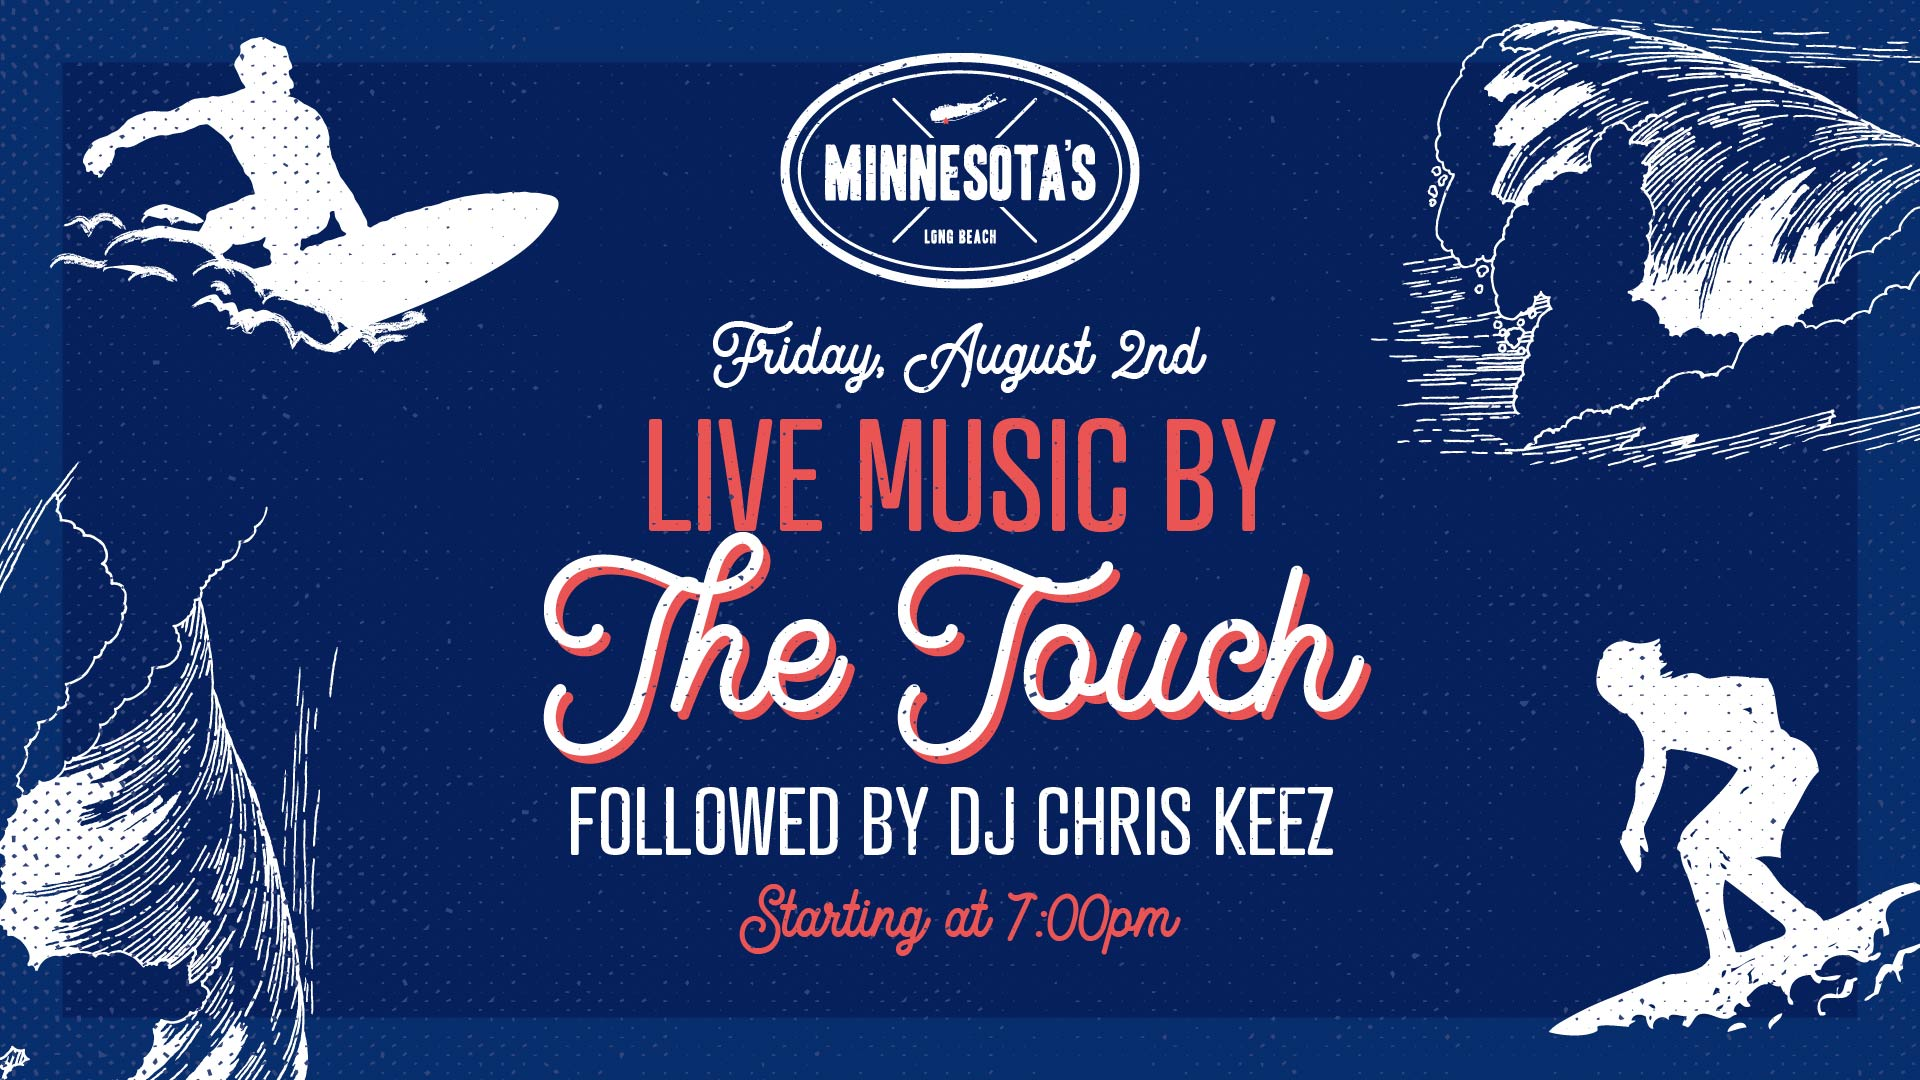 flyer for live music by the touch followed by dj chris keez at minnesotas on august 2nd at 7pm